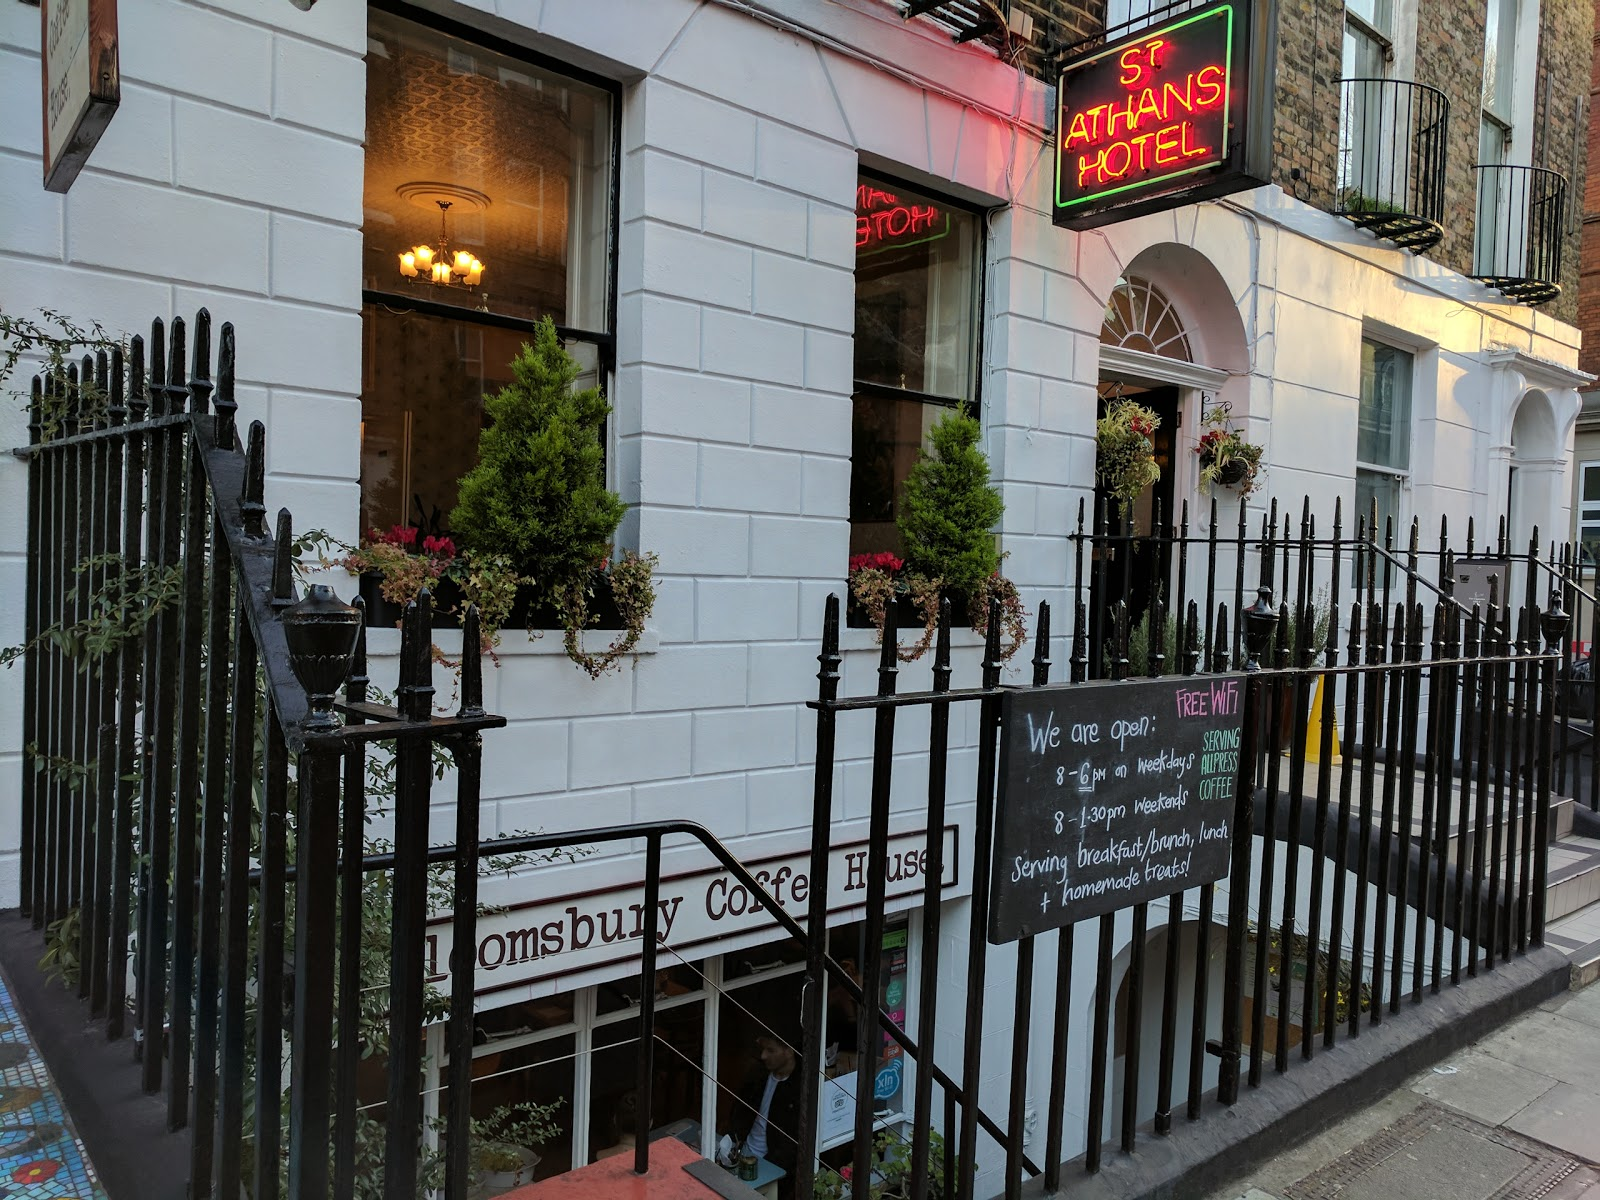 Bloomsbury Coffee House: A Work-Friendly Place in London